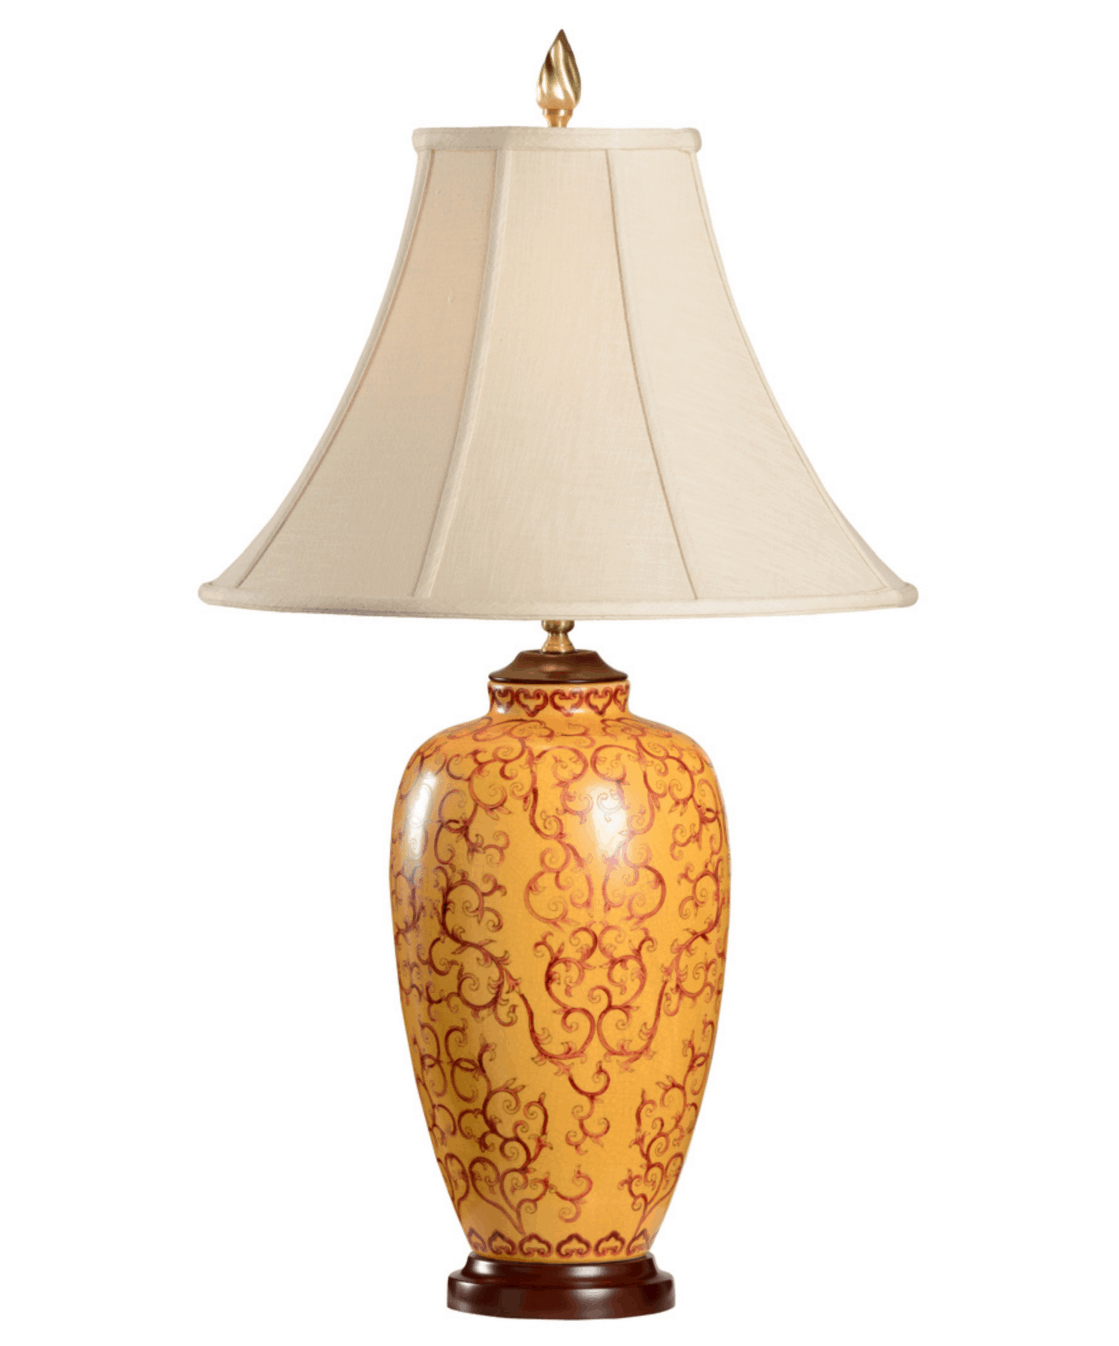 Red On Yellow Porcelain Lamp By Wildwood Lamps 30